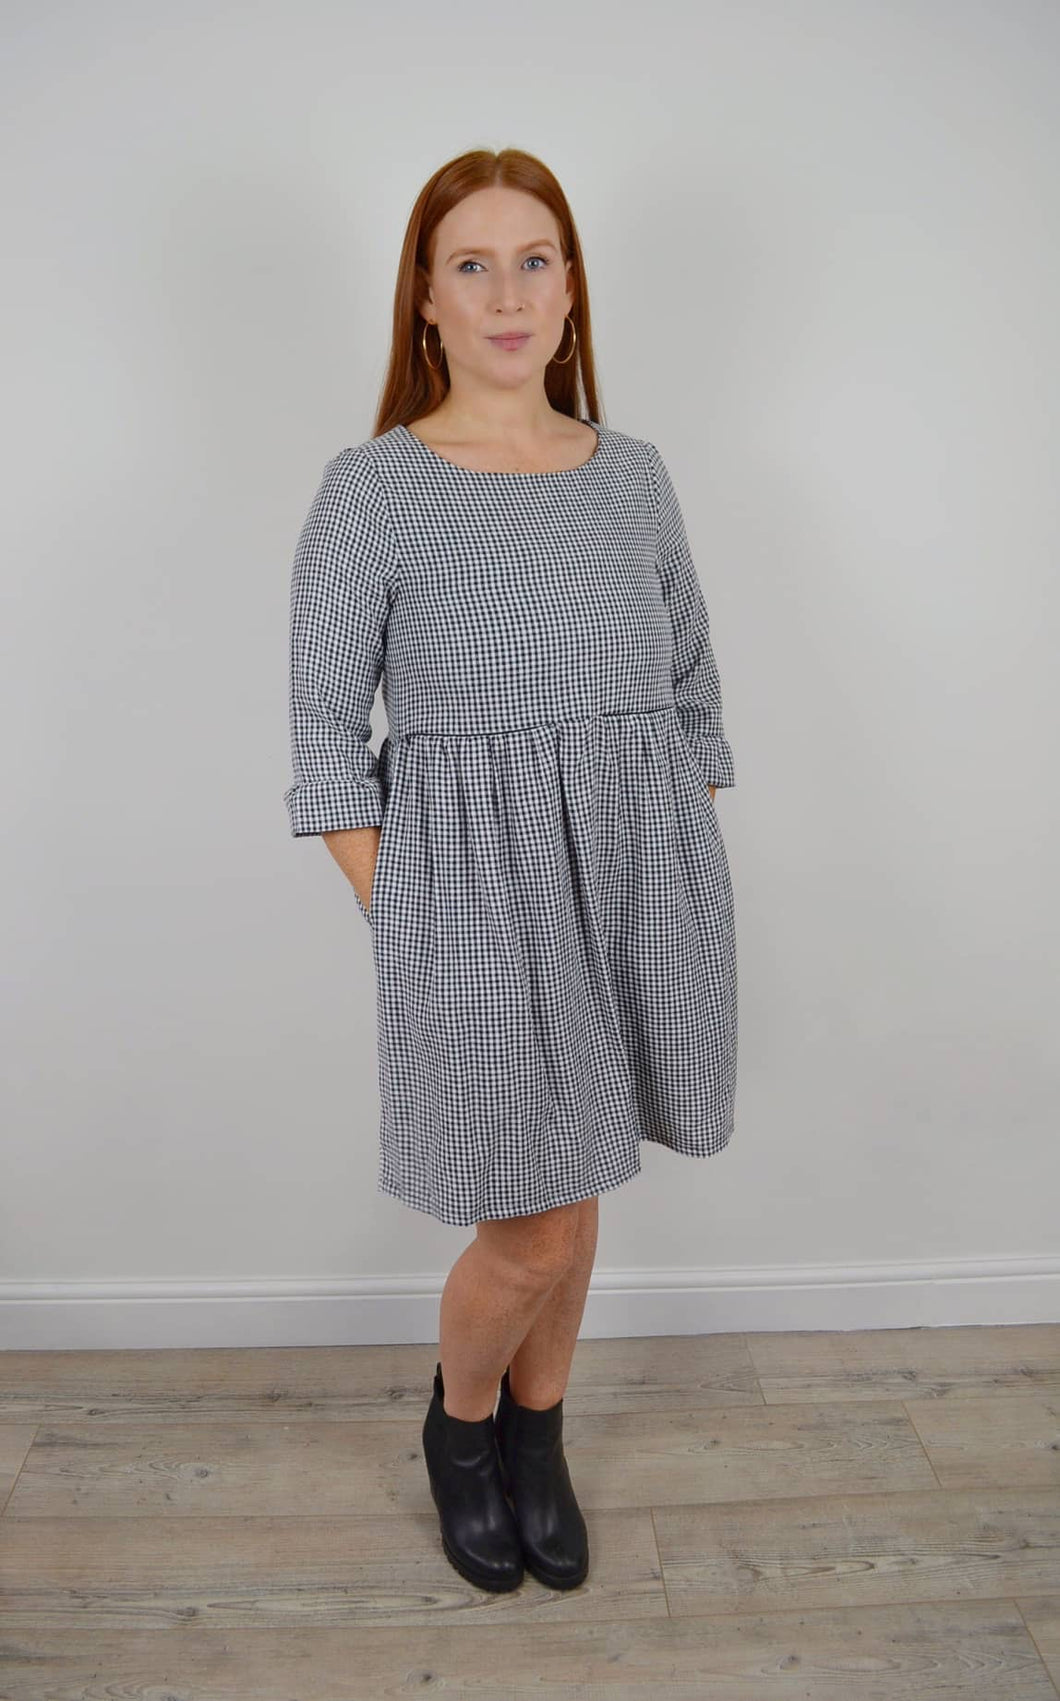 Gingham check nursing dress for breastfeeding Smock dress with flared sleeves and pockets Invisible zips allow breastfeeding Made ethically in the UK